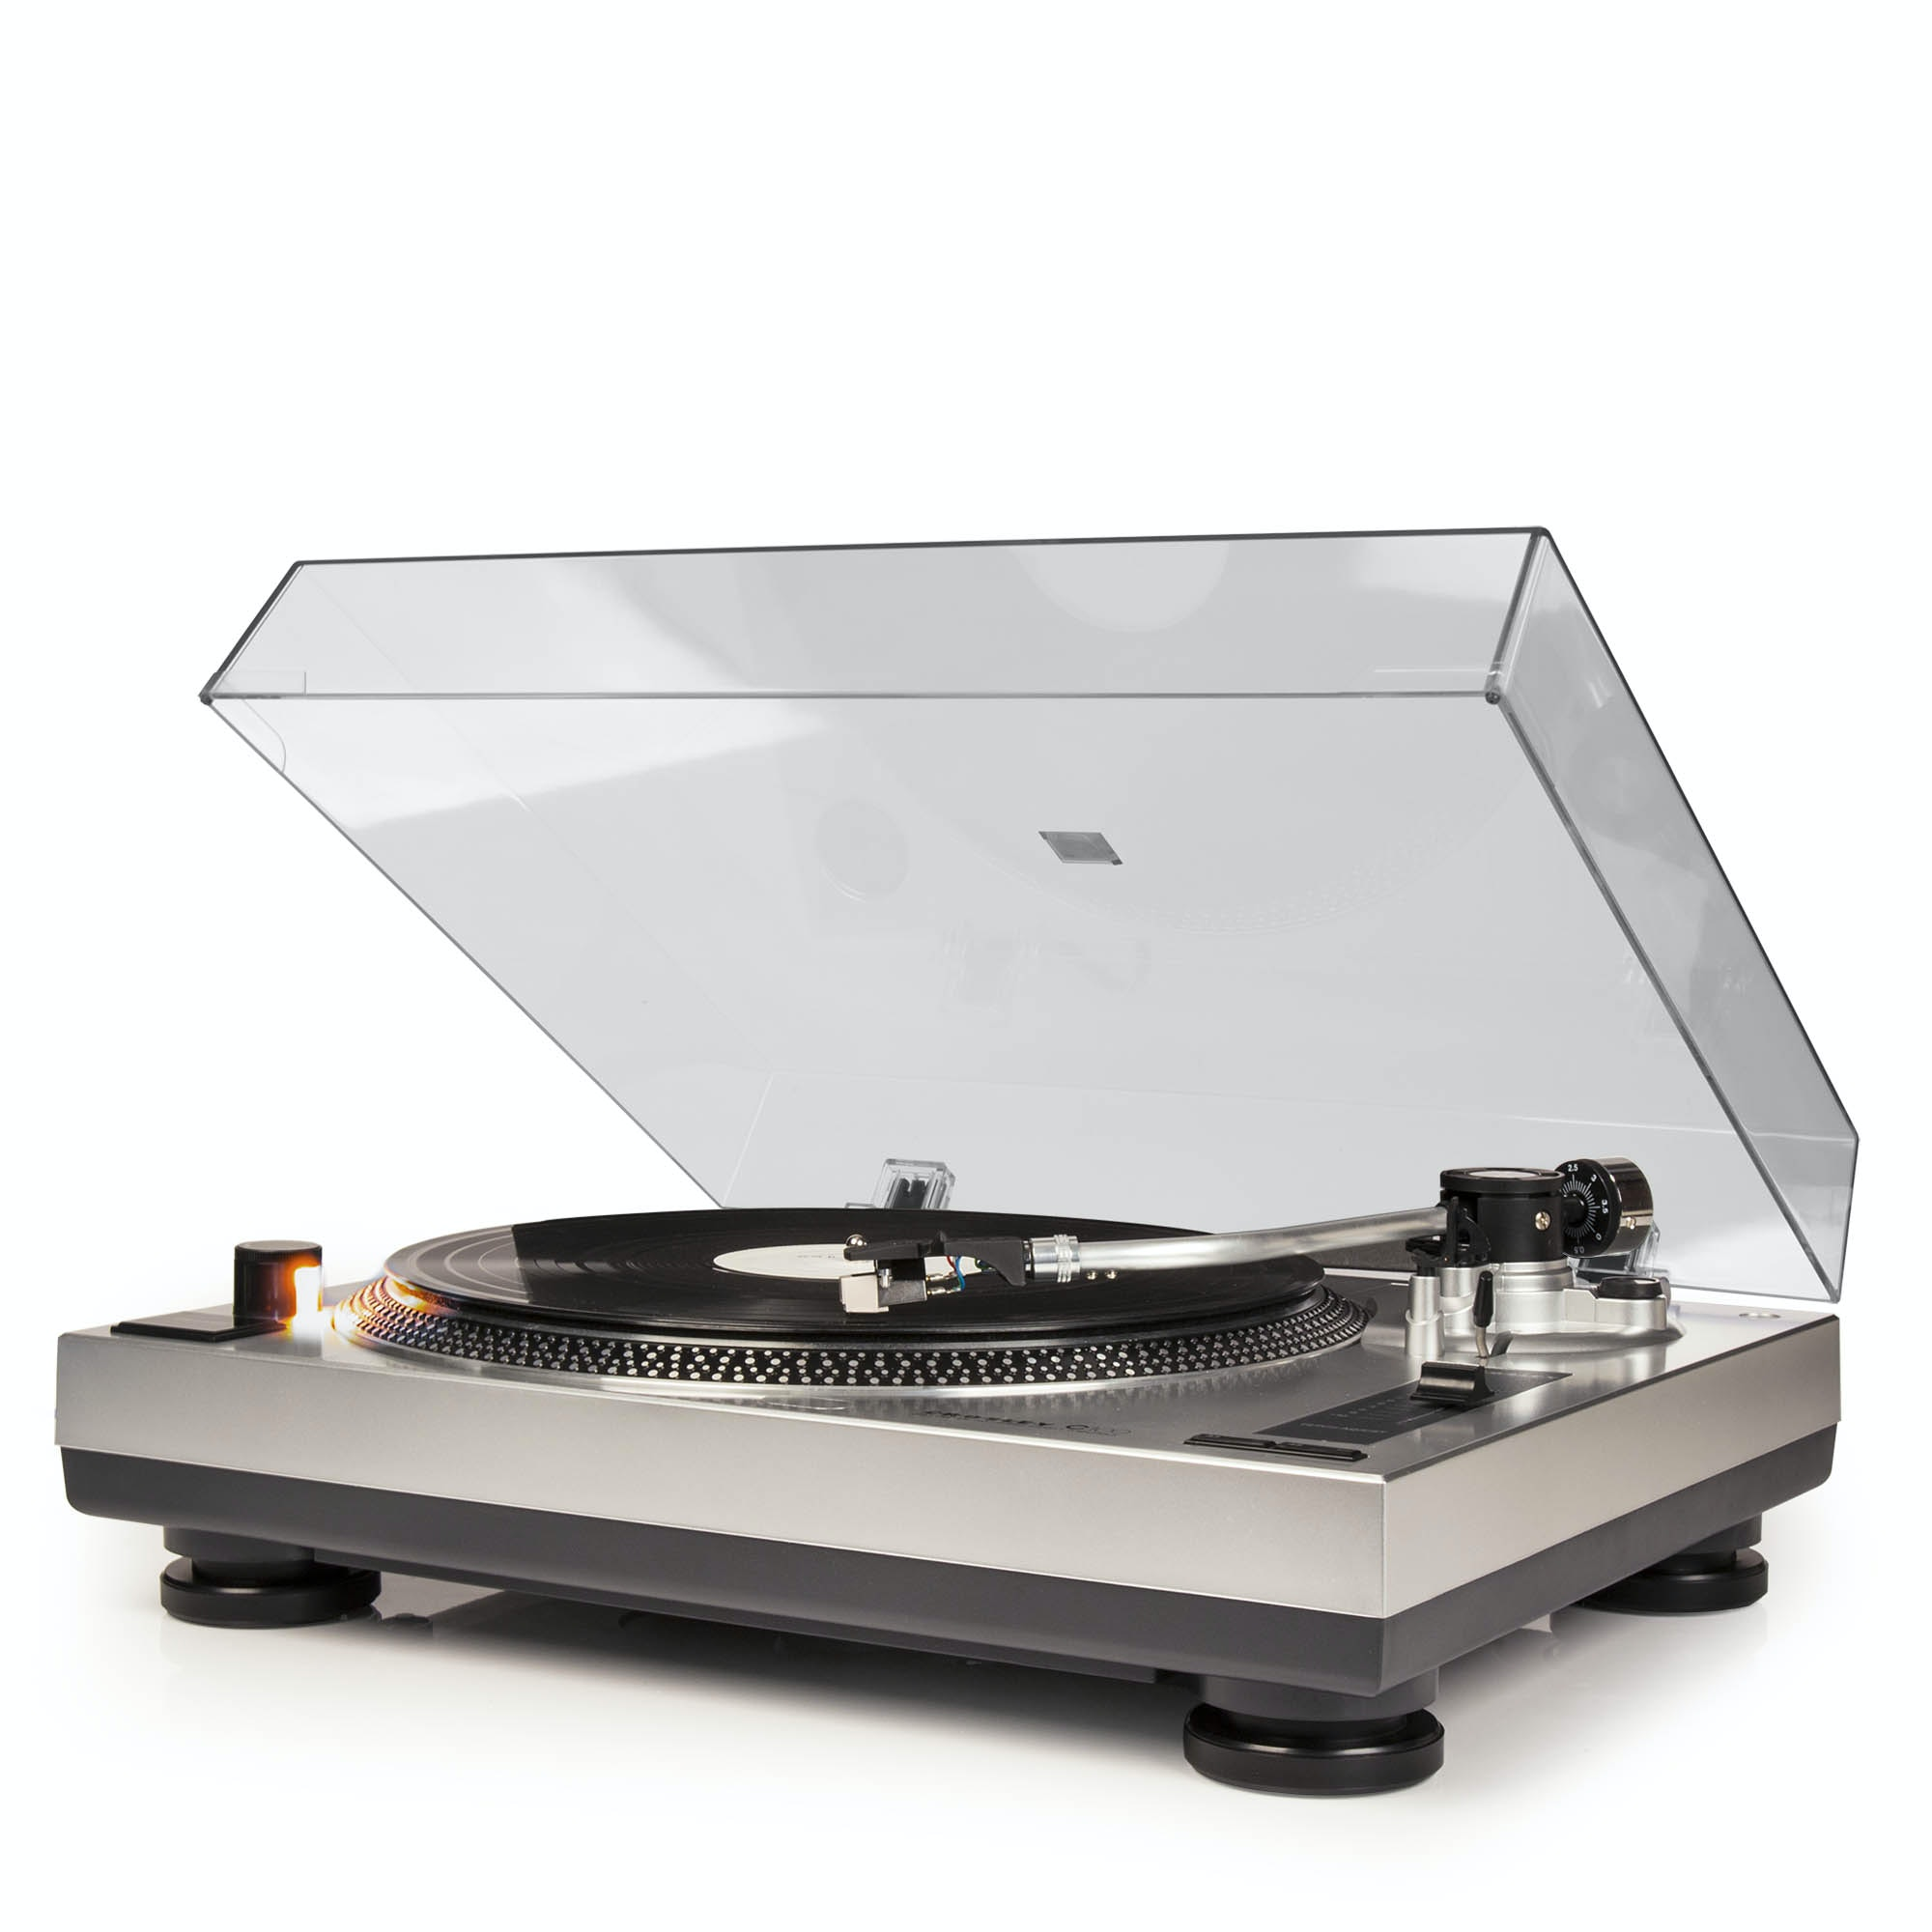 Crowley C100 Turntable